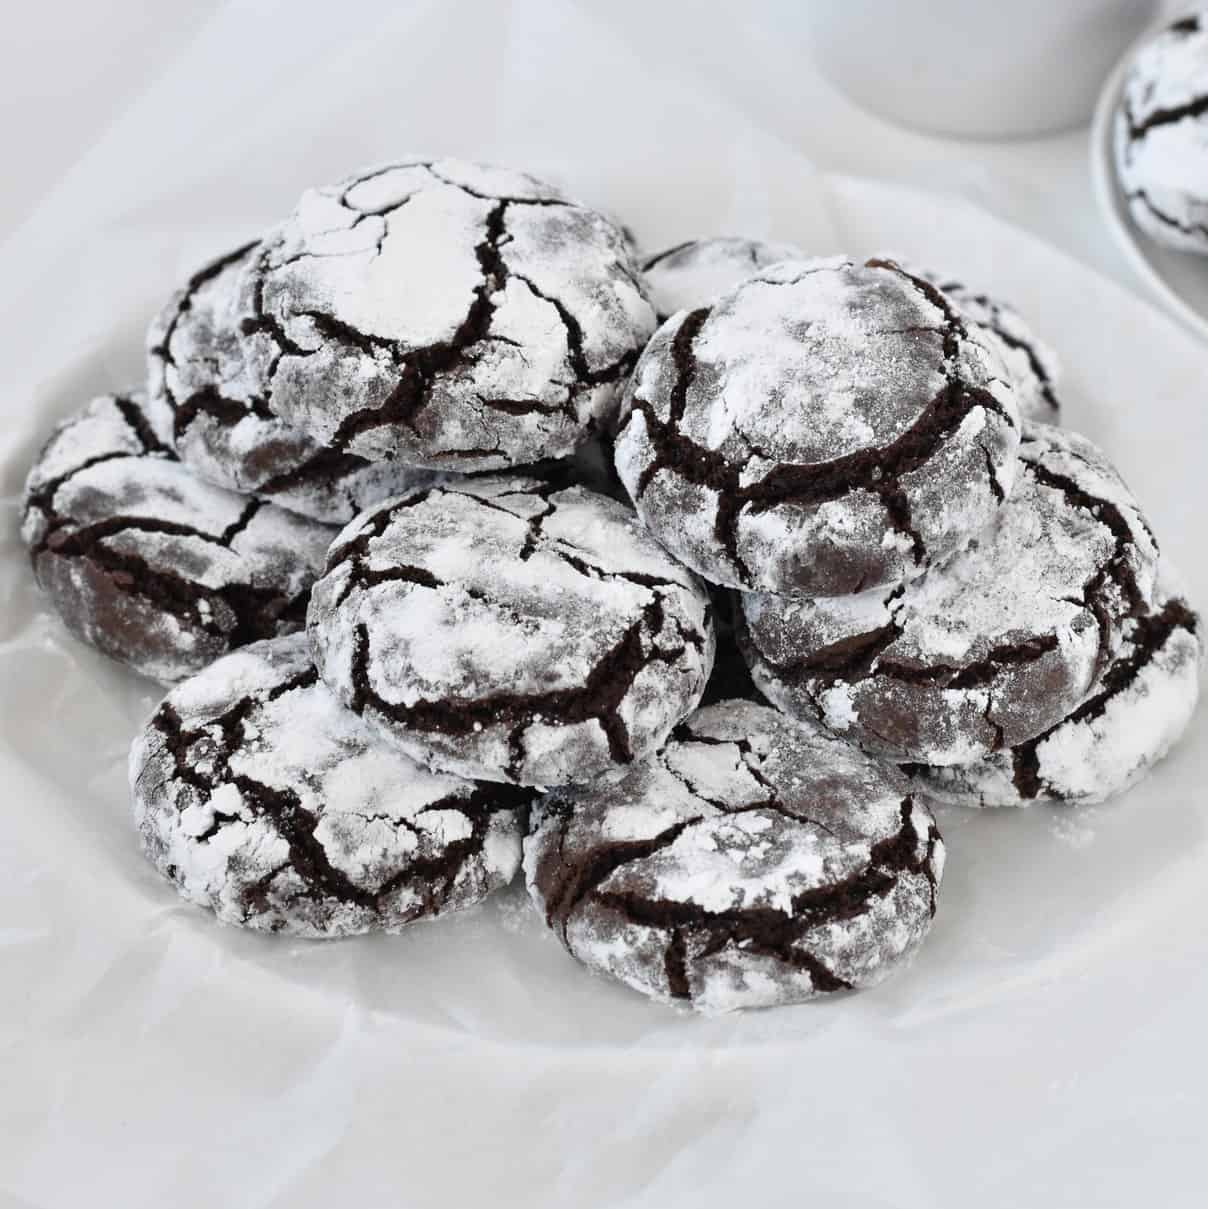 Chocolate crinkle cookies stacked in a pile.